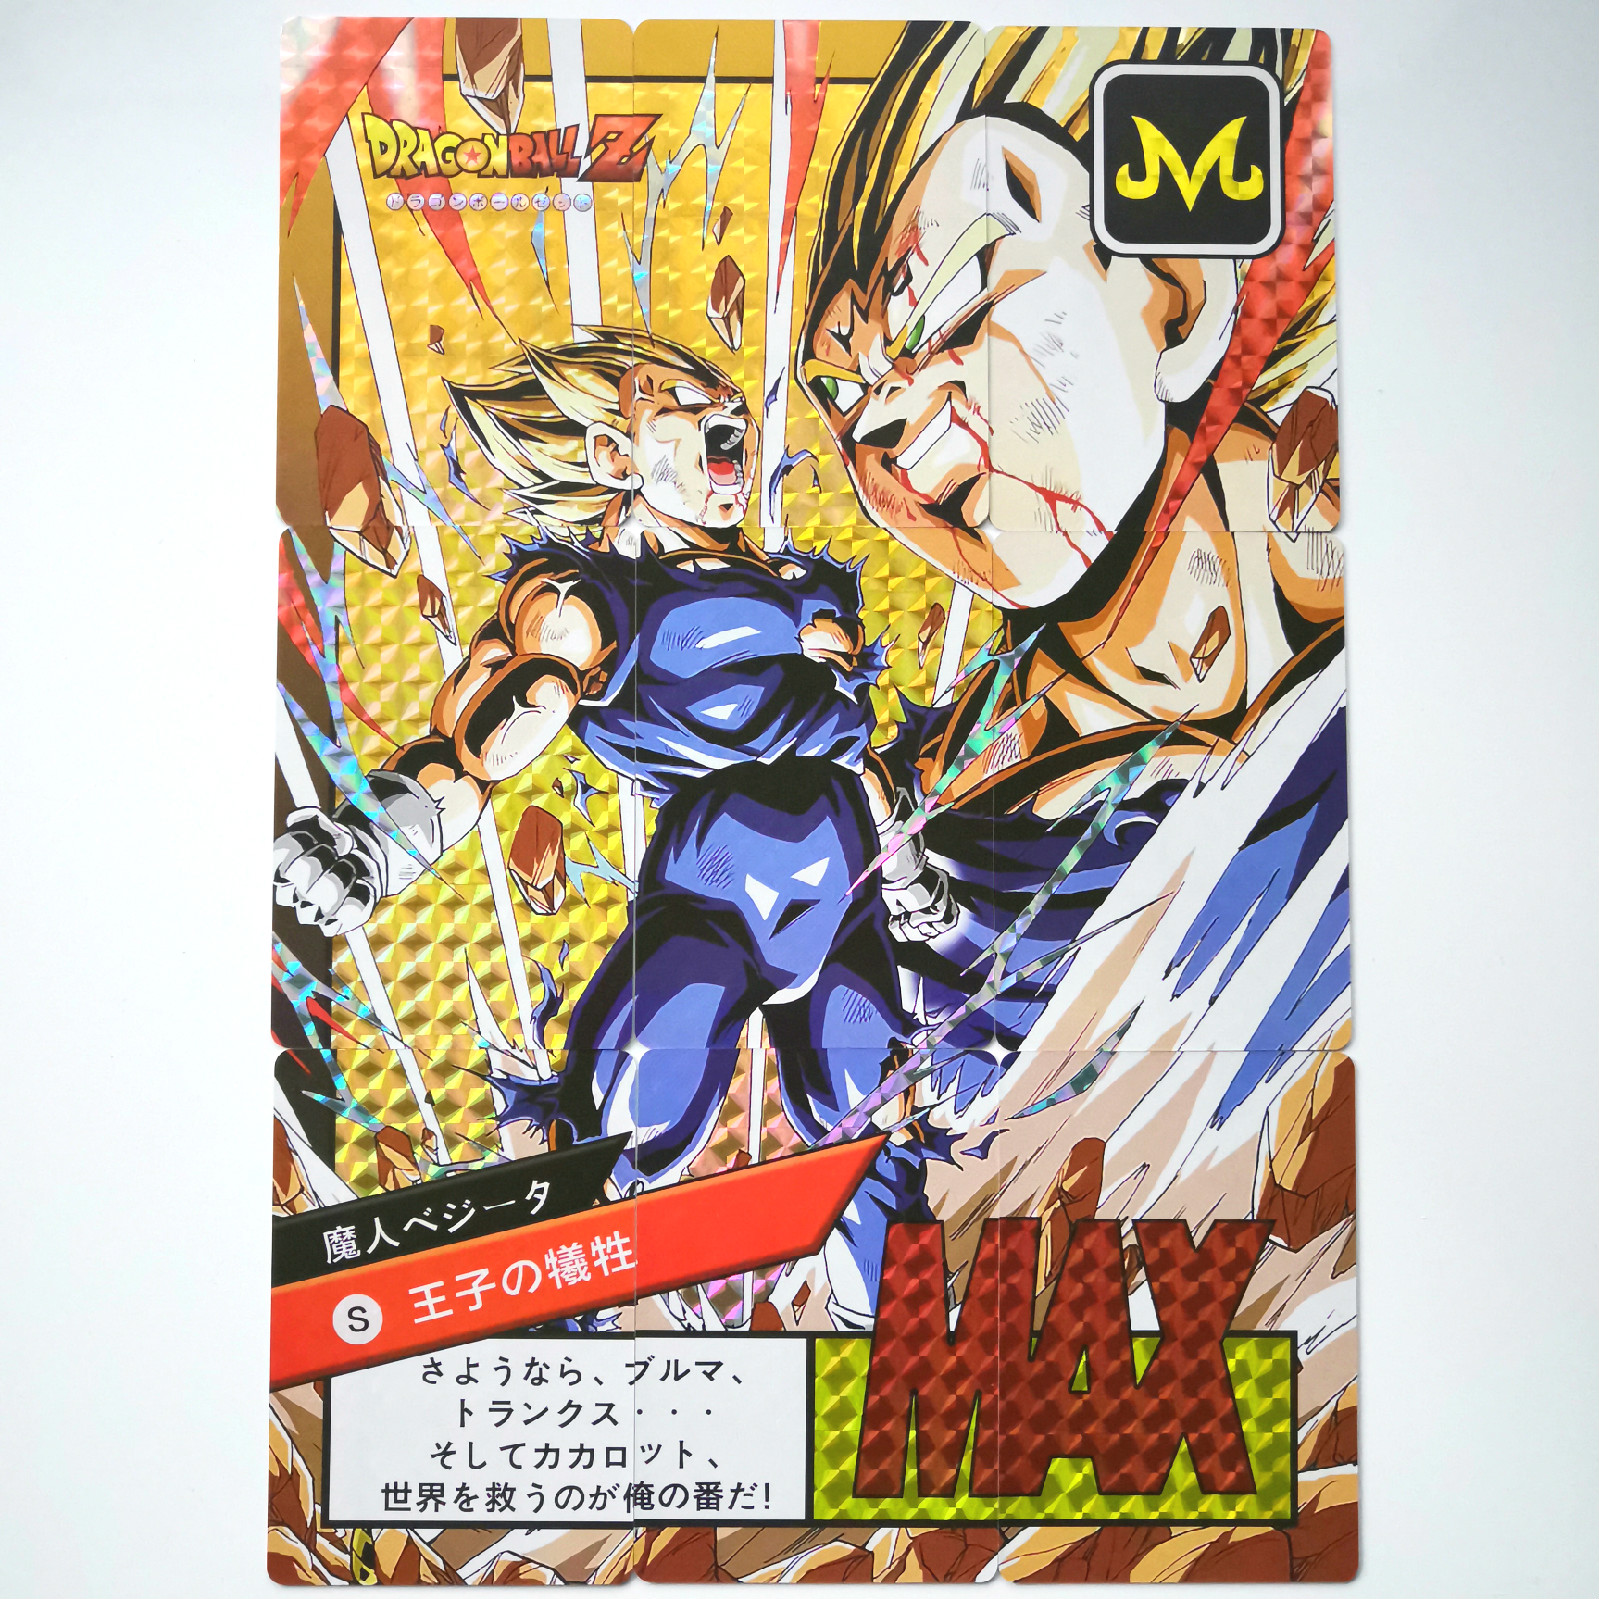 10pcs Super Dragon Ball Z Limited To Sets Heroes Battle Card Ultra Instinct Goku Vegeta Super Game Collection  Anime Cards